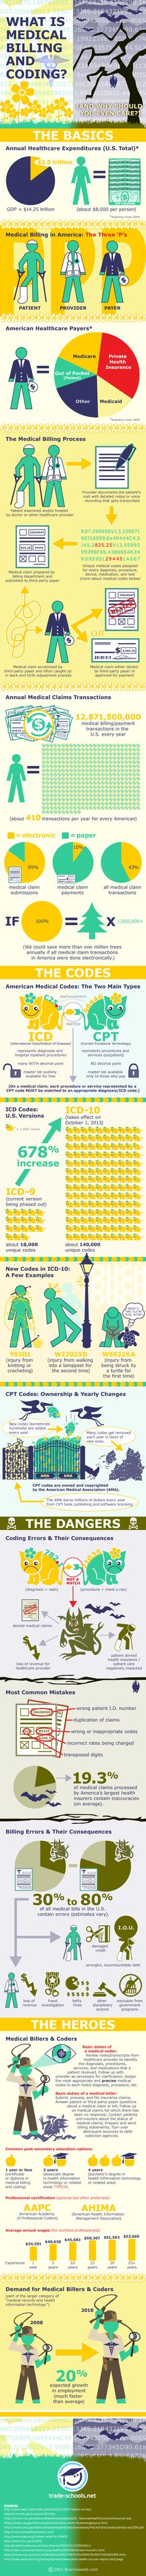 What is medical billing and coding? Check out this infographic to learn why medical coders and billers should be admired as heroes in the medical field. Medical Coder, Medical Billing And Coding, Medical Careers, Medical Terminology, Medical Assistant, Medical History, Medical Coding Course, Health Information Management, Manager Humor